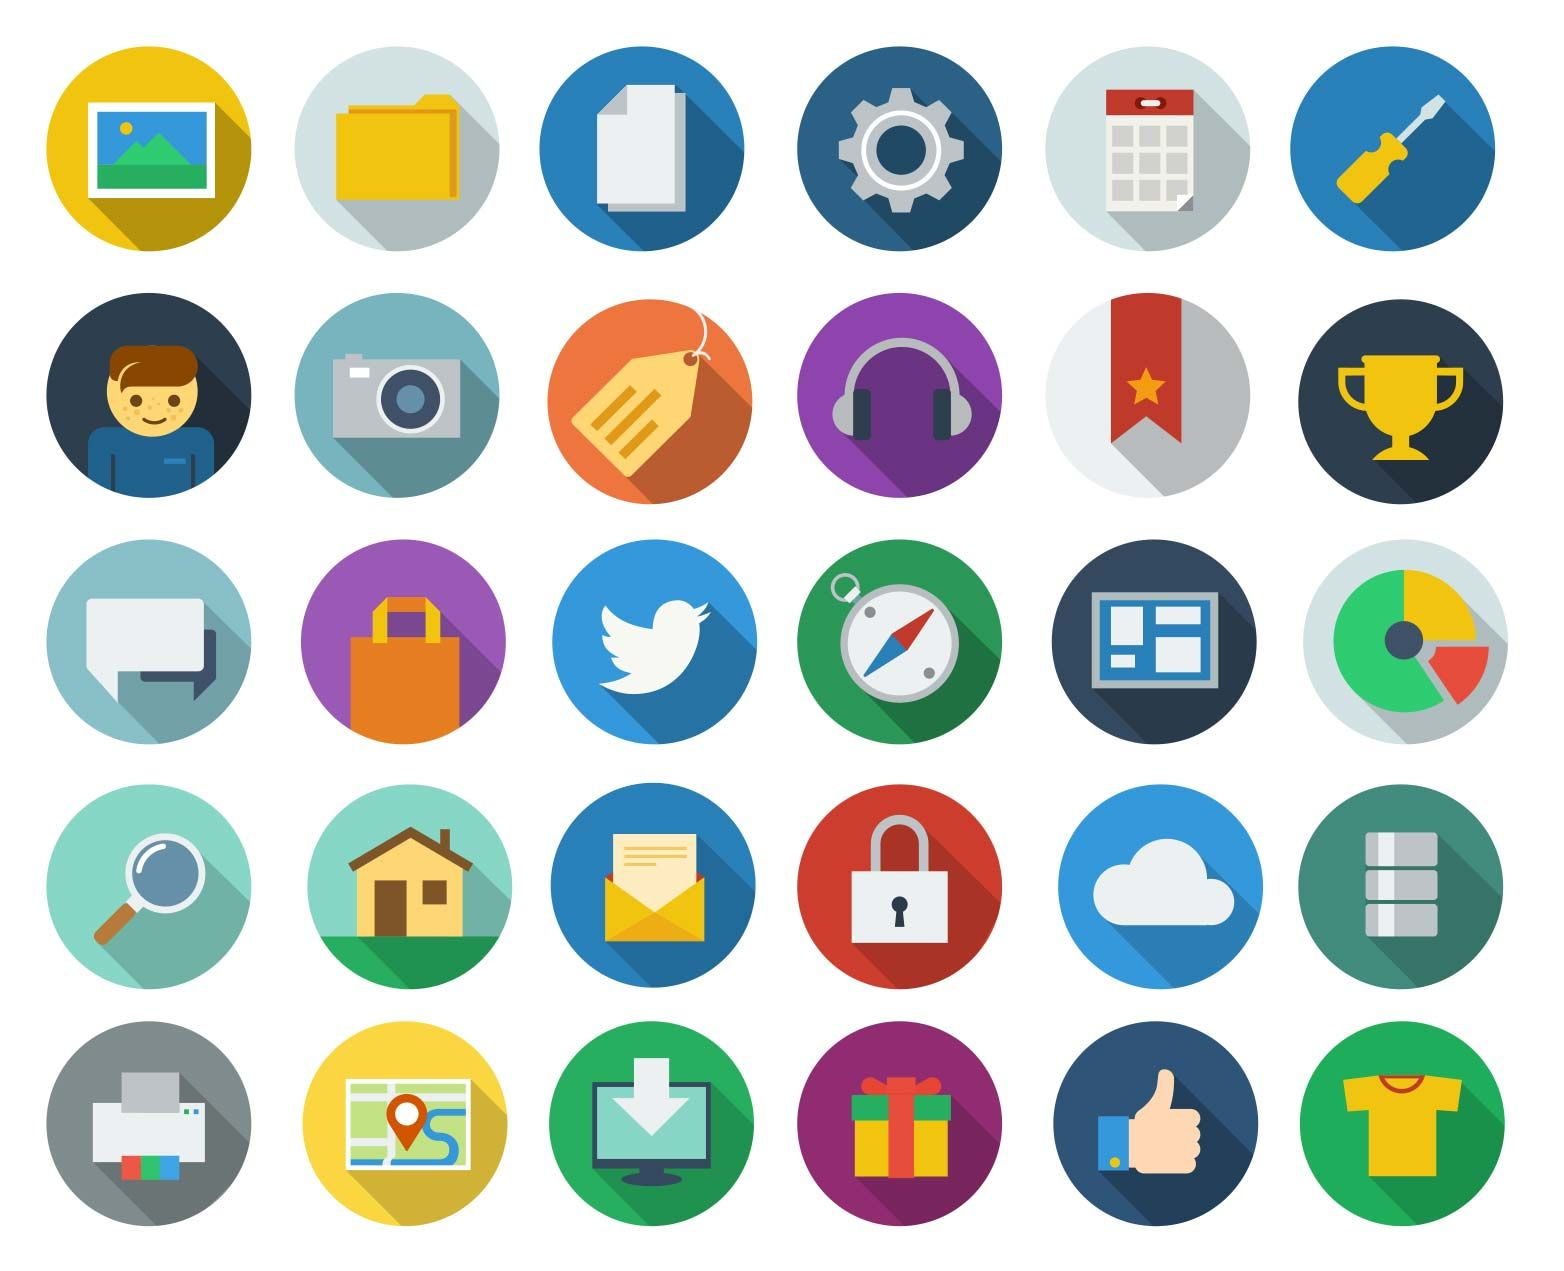 50 Free Vector Icons Of Web Design And Development Designed By Vectors Market In 2020 Web Design Icon Web Development Design Web Design